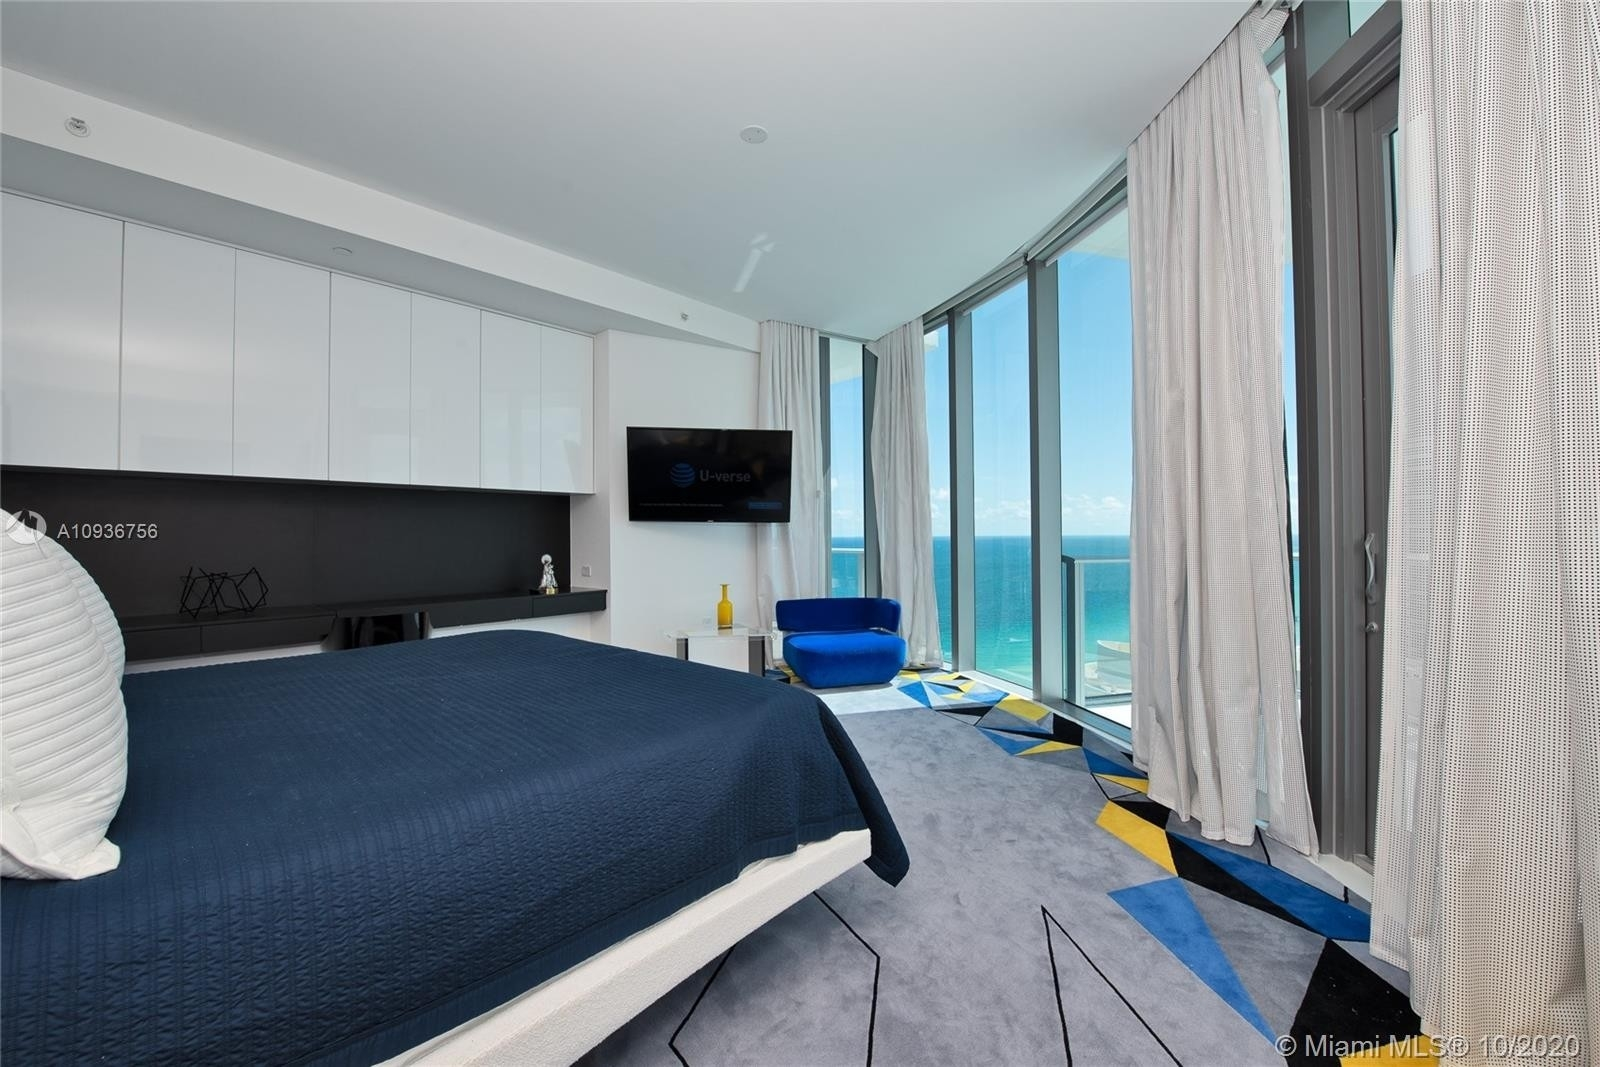 10. Condominiums for Sale at 17475 Collins Ave , 2602 Sunny Isles Beach, FL 33160